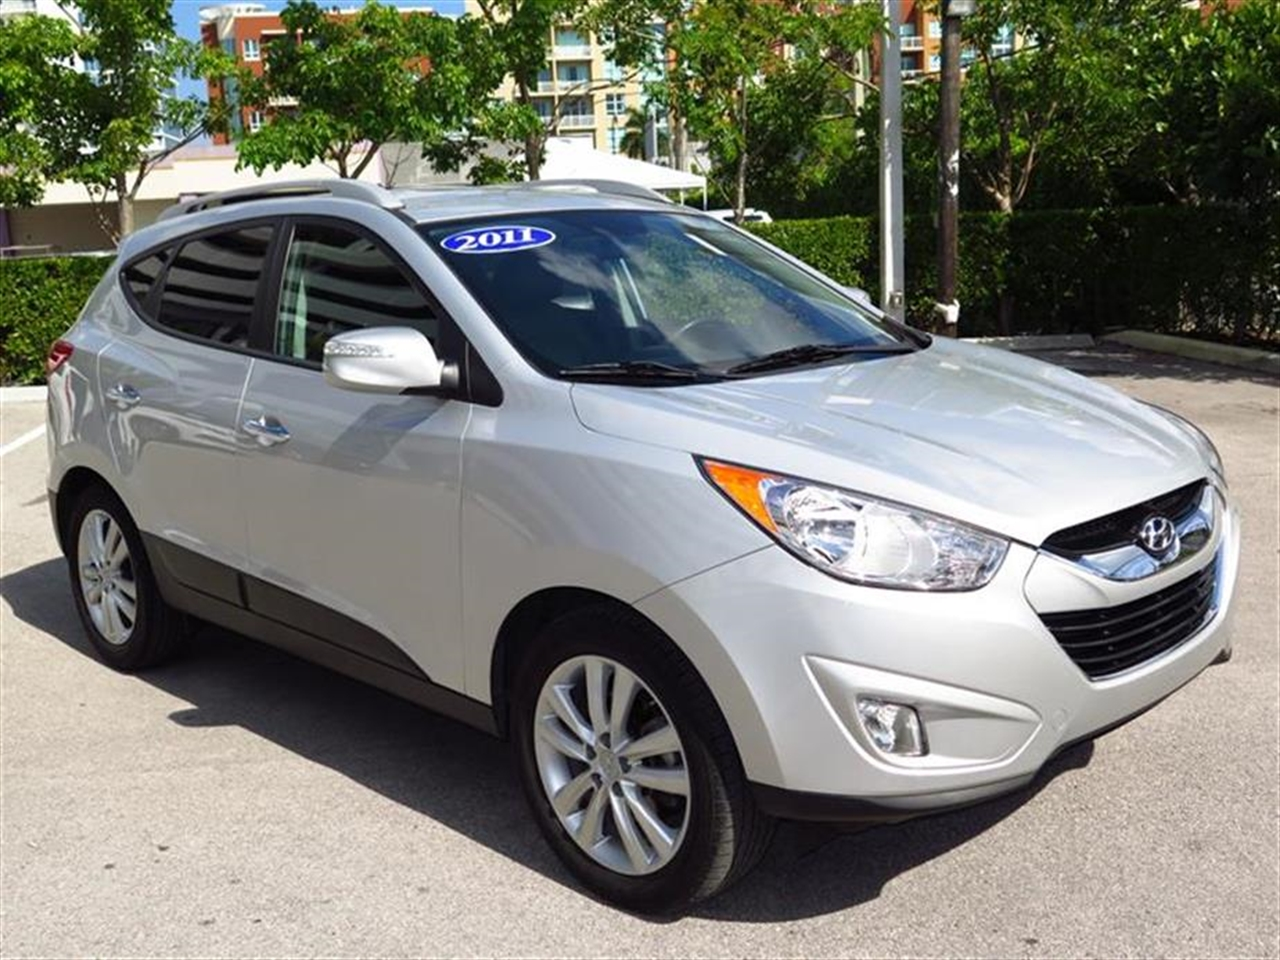 2011 HYUNDAI TUCSON AWD 4dr Auto GLS Ltd Avail 22130 miles 2 front 12V pwr outlet 4 assist